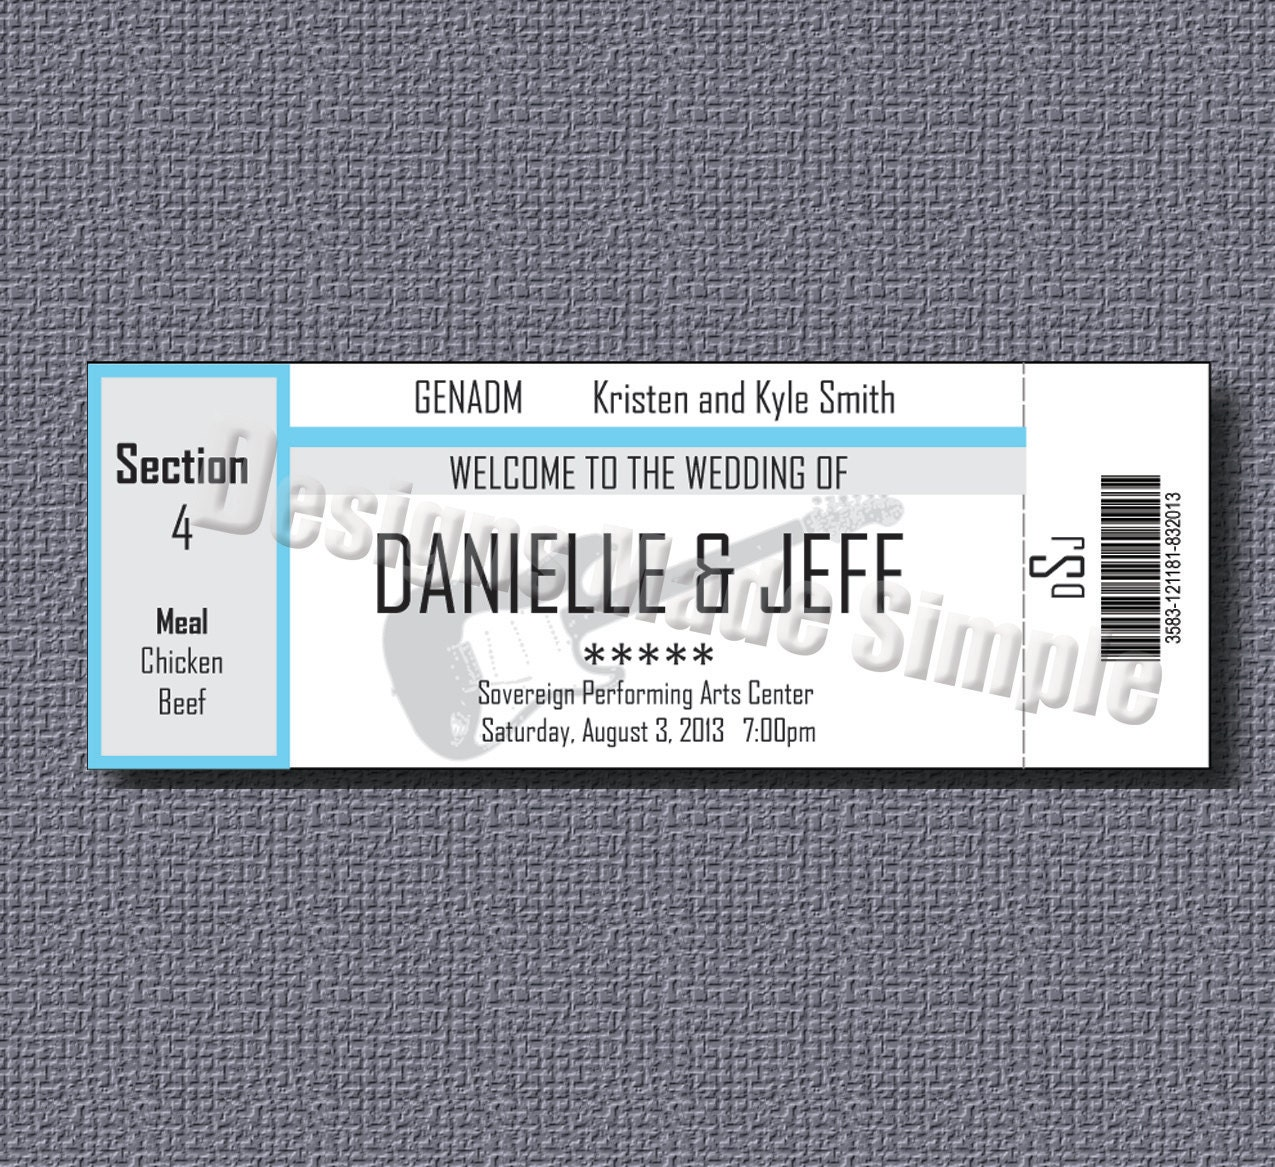 Concert Ticket Wedding Place Cards Printables - Wedding invitation templates: wedding place card size